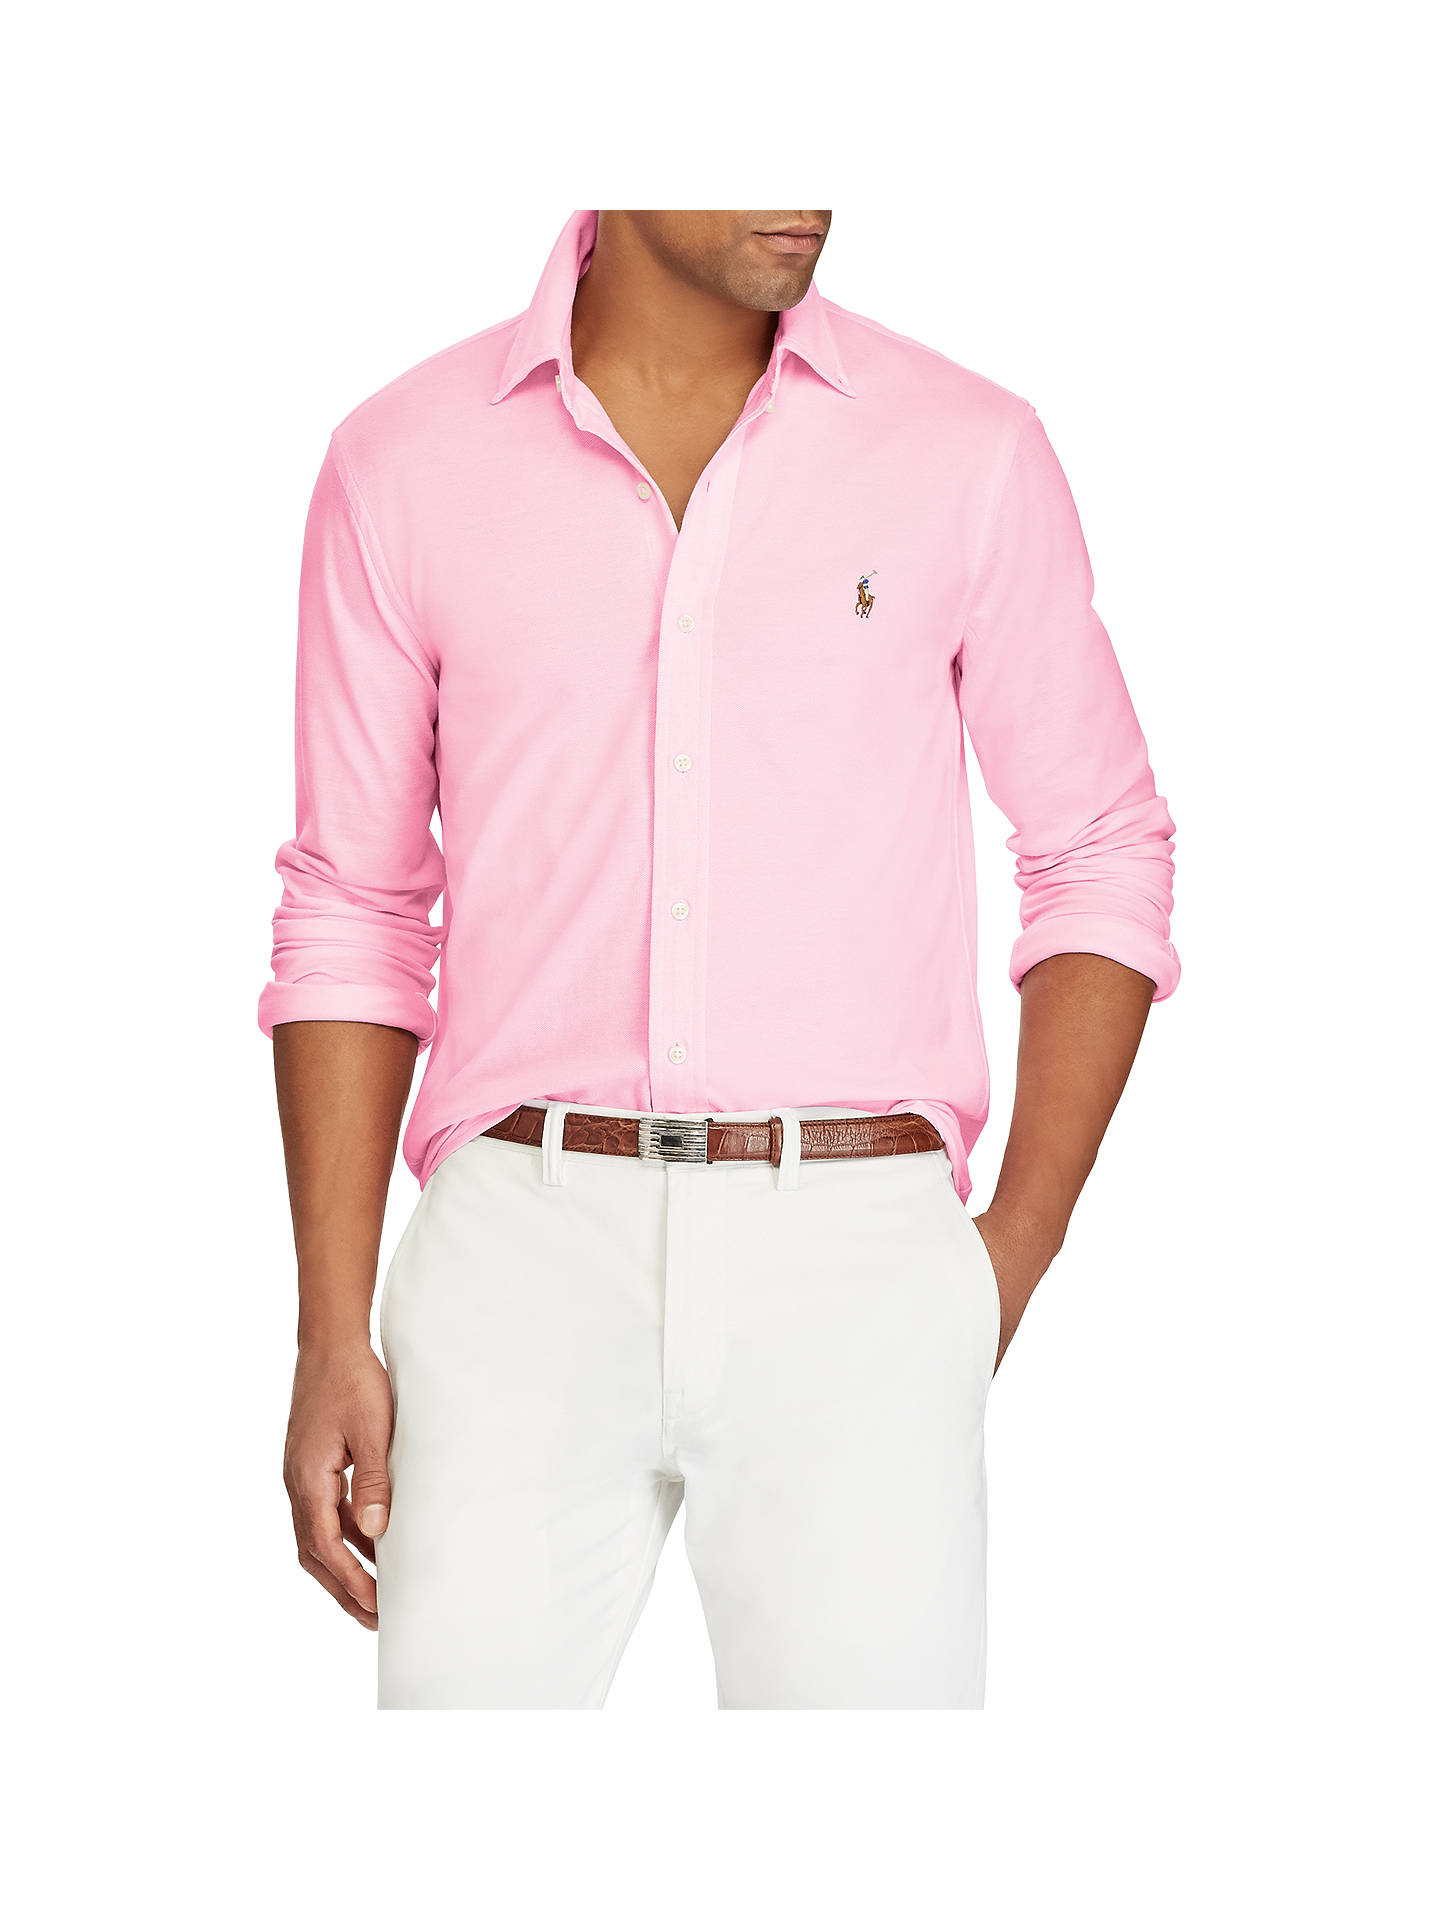 Polo Ralph Lauren Custom Fit Oxford Shirt At John Lewis Partners